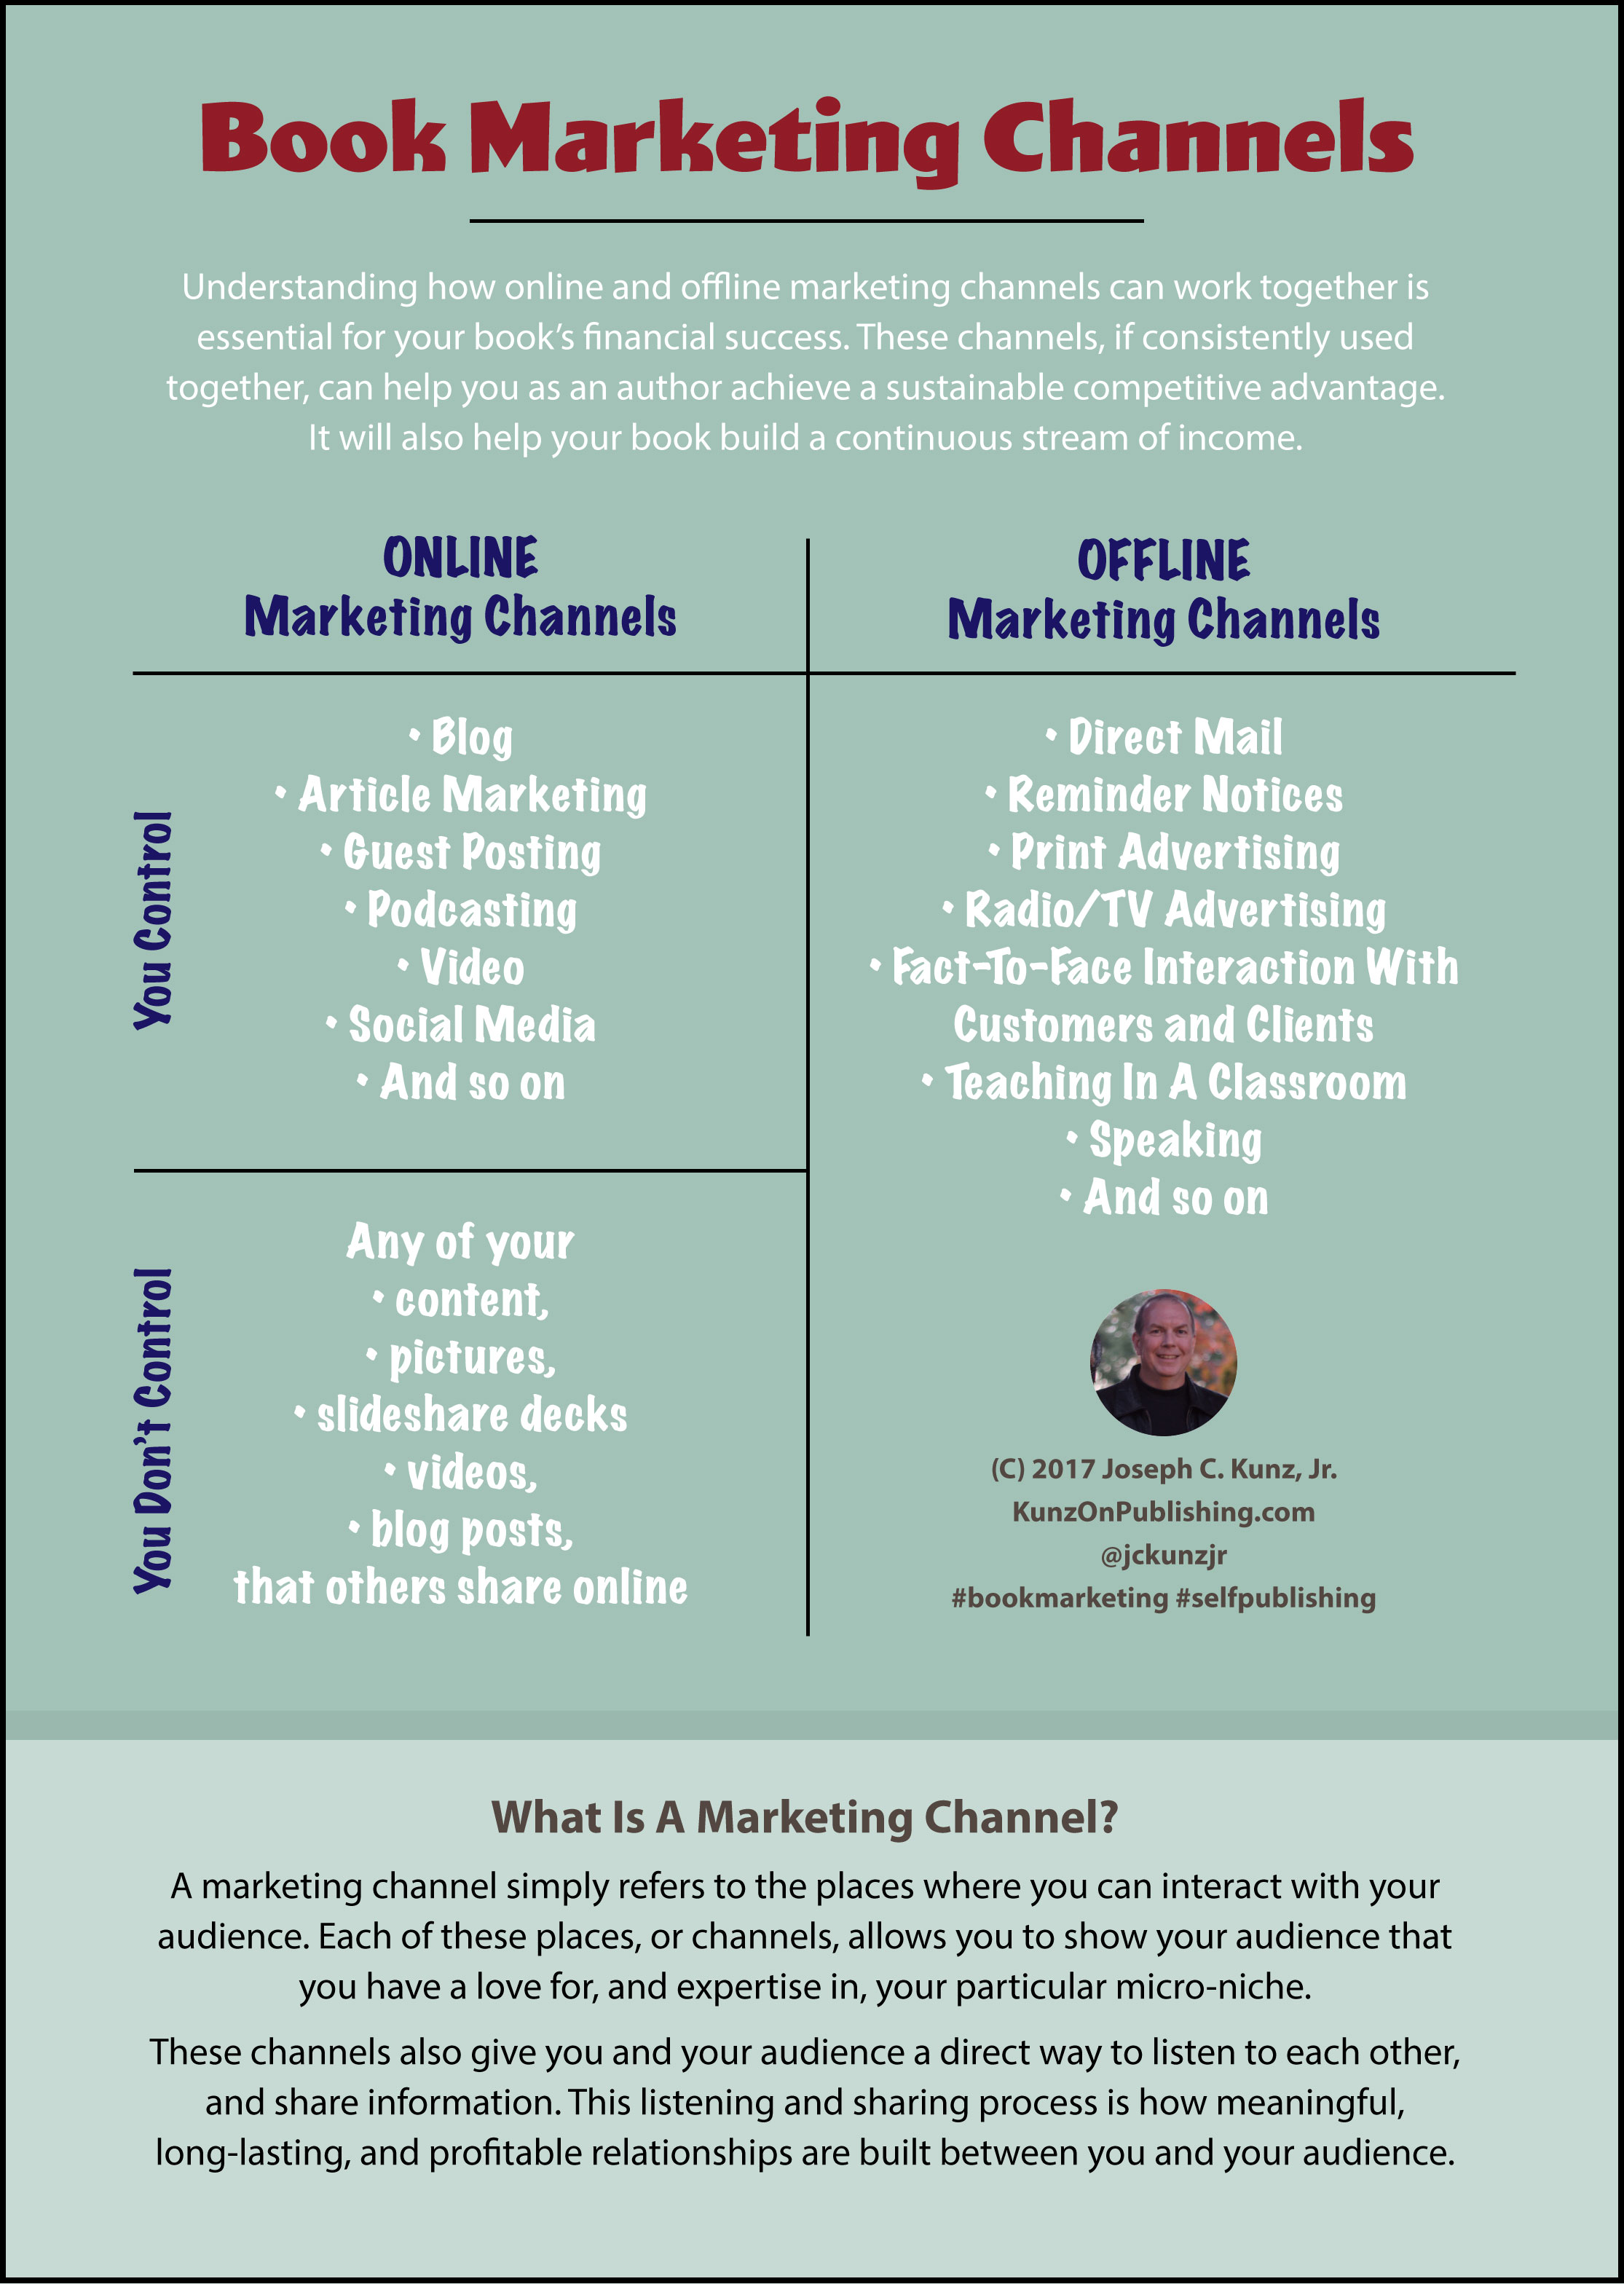 The 5 Elements Of Online Marketing (Infographic) by Joseph C. Kunz, Jr.